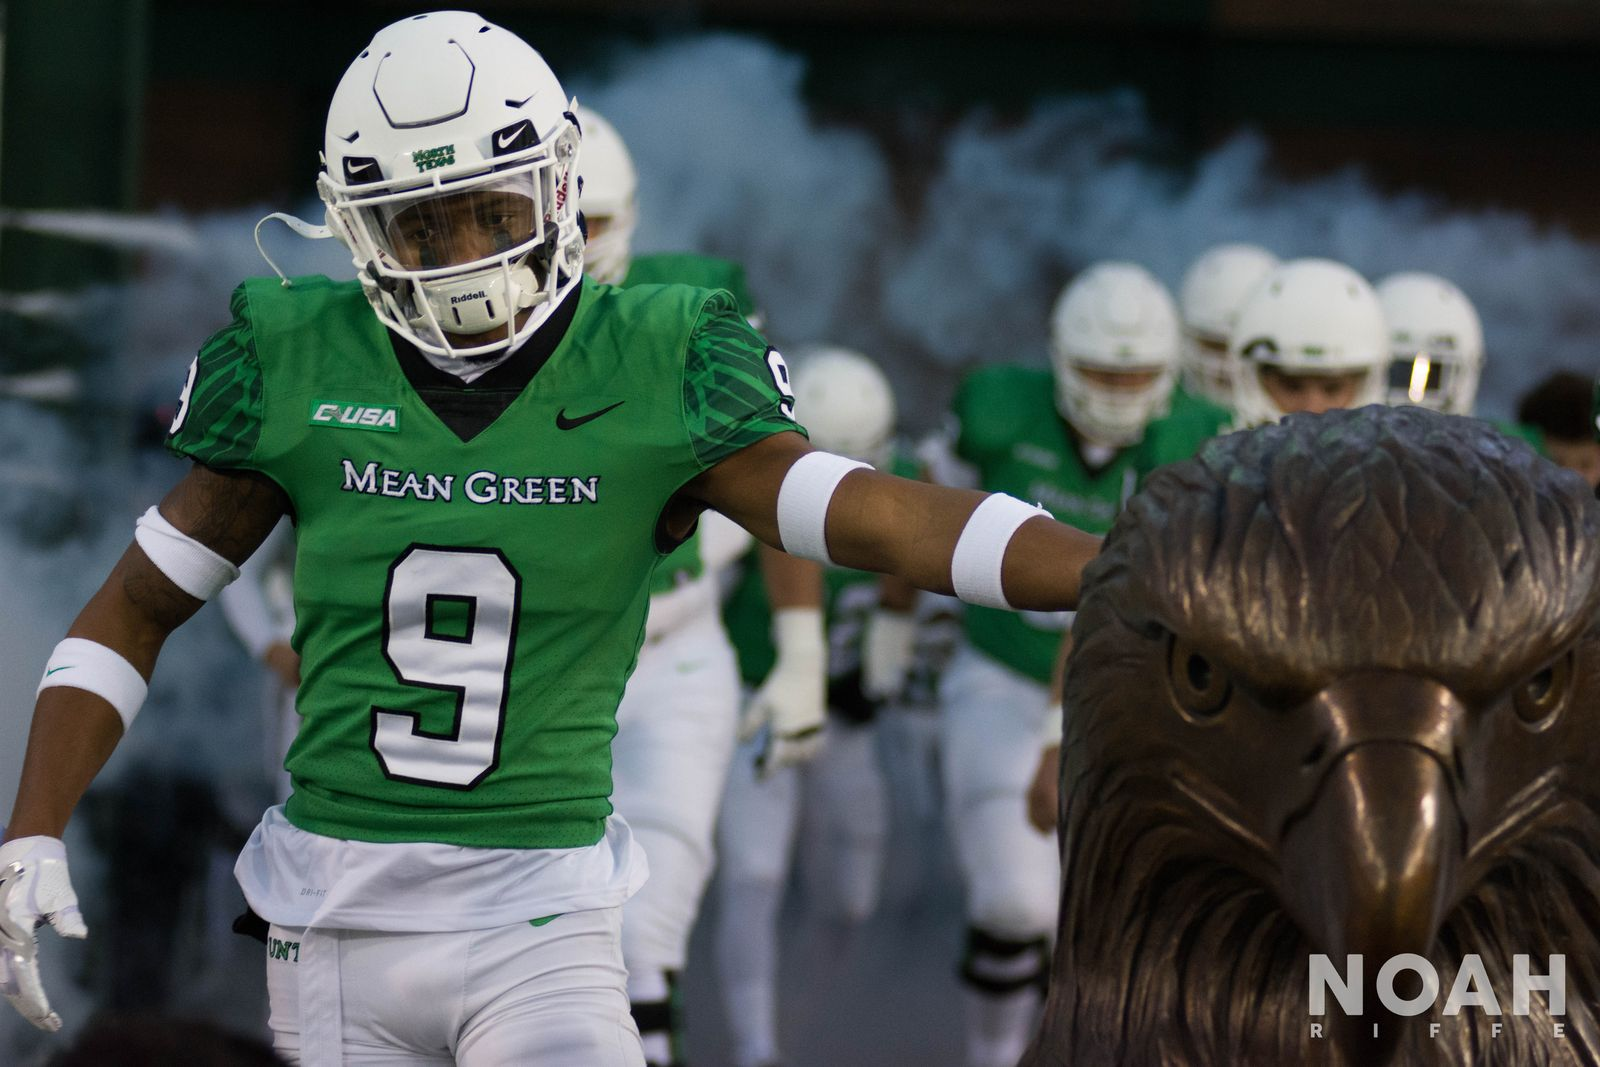 Photo Gallery: UNT vs. Army - By: Noah Riffe